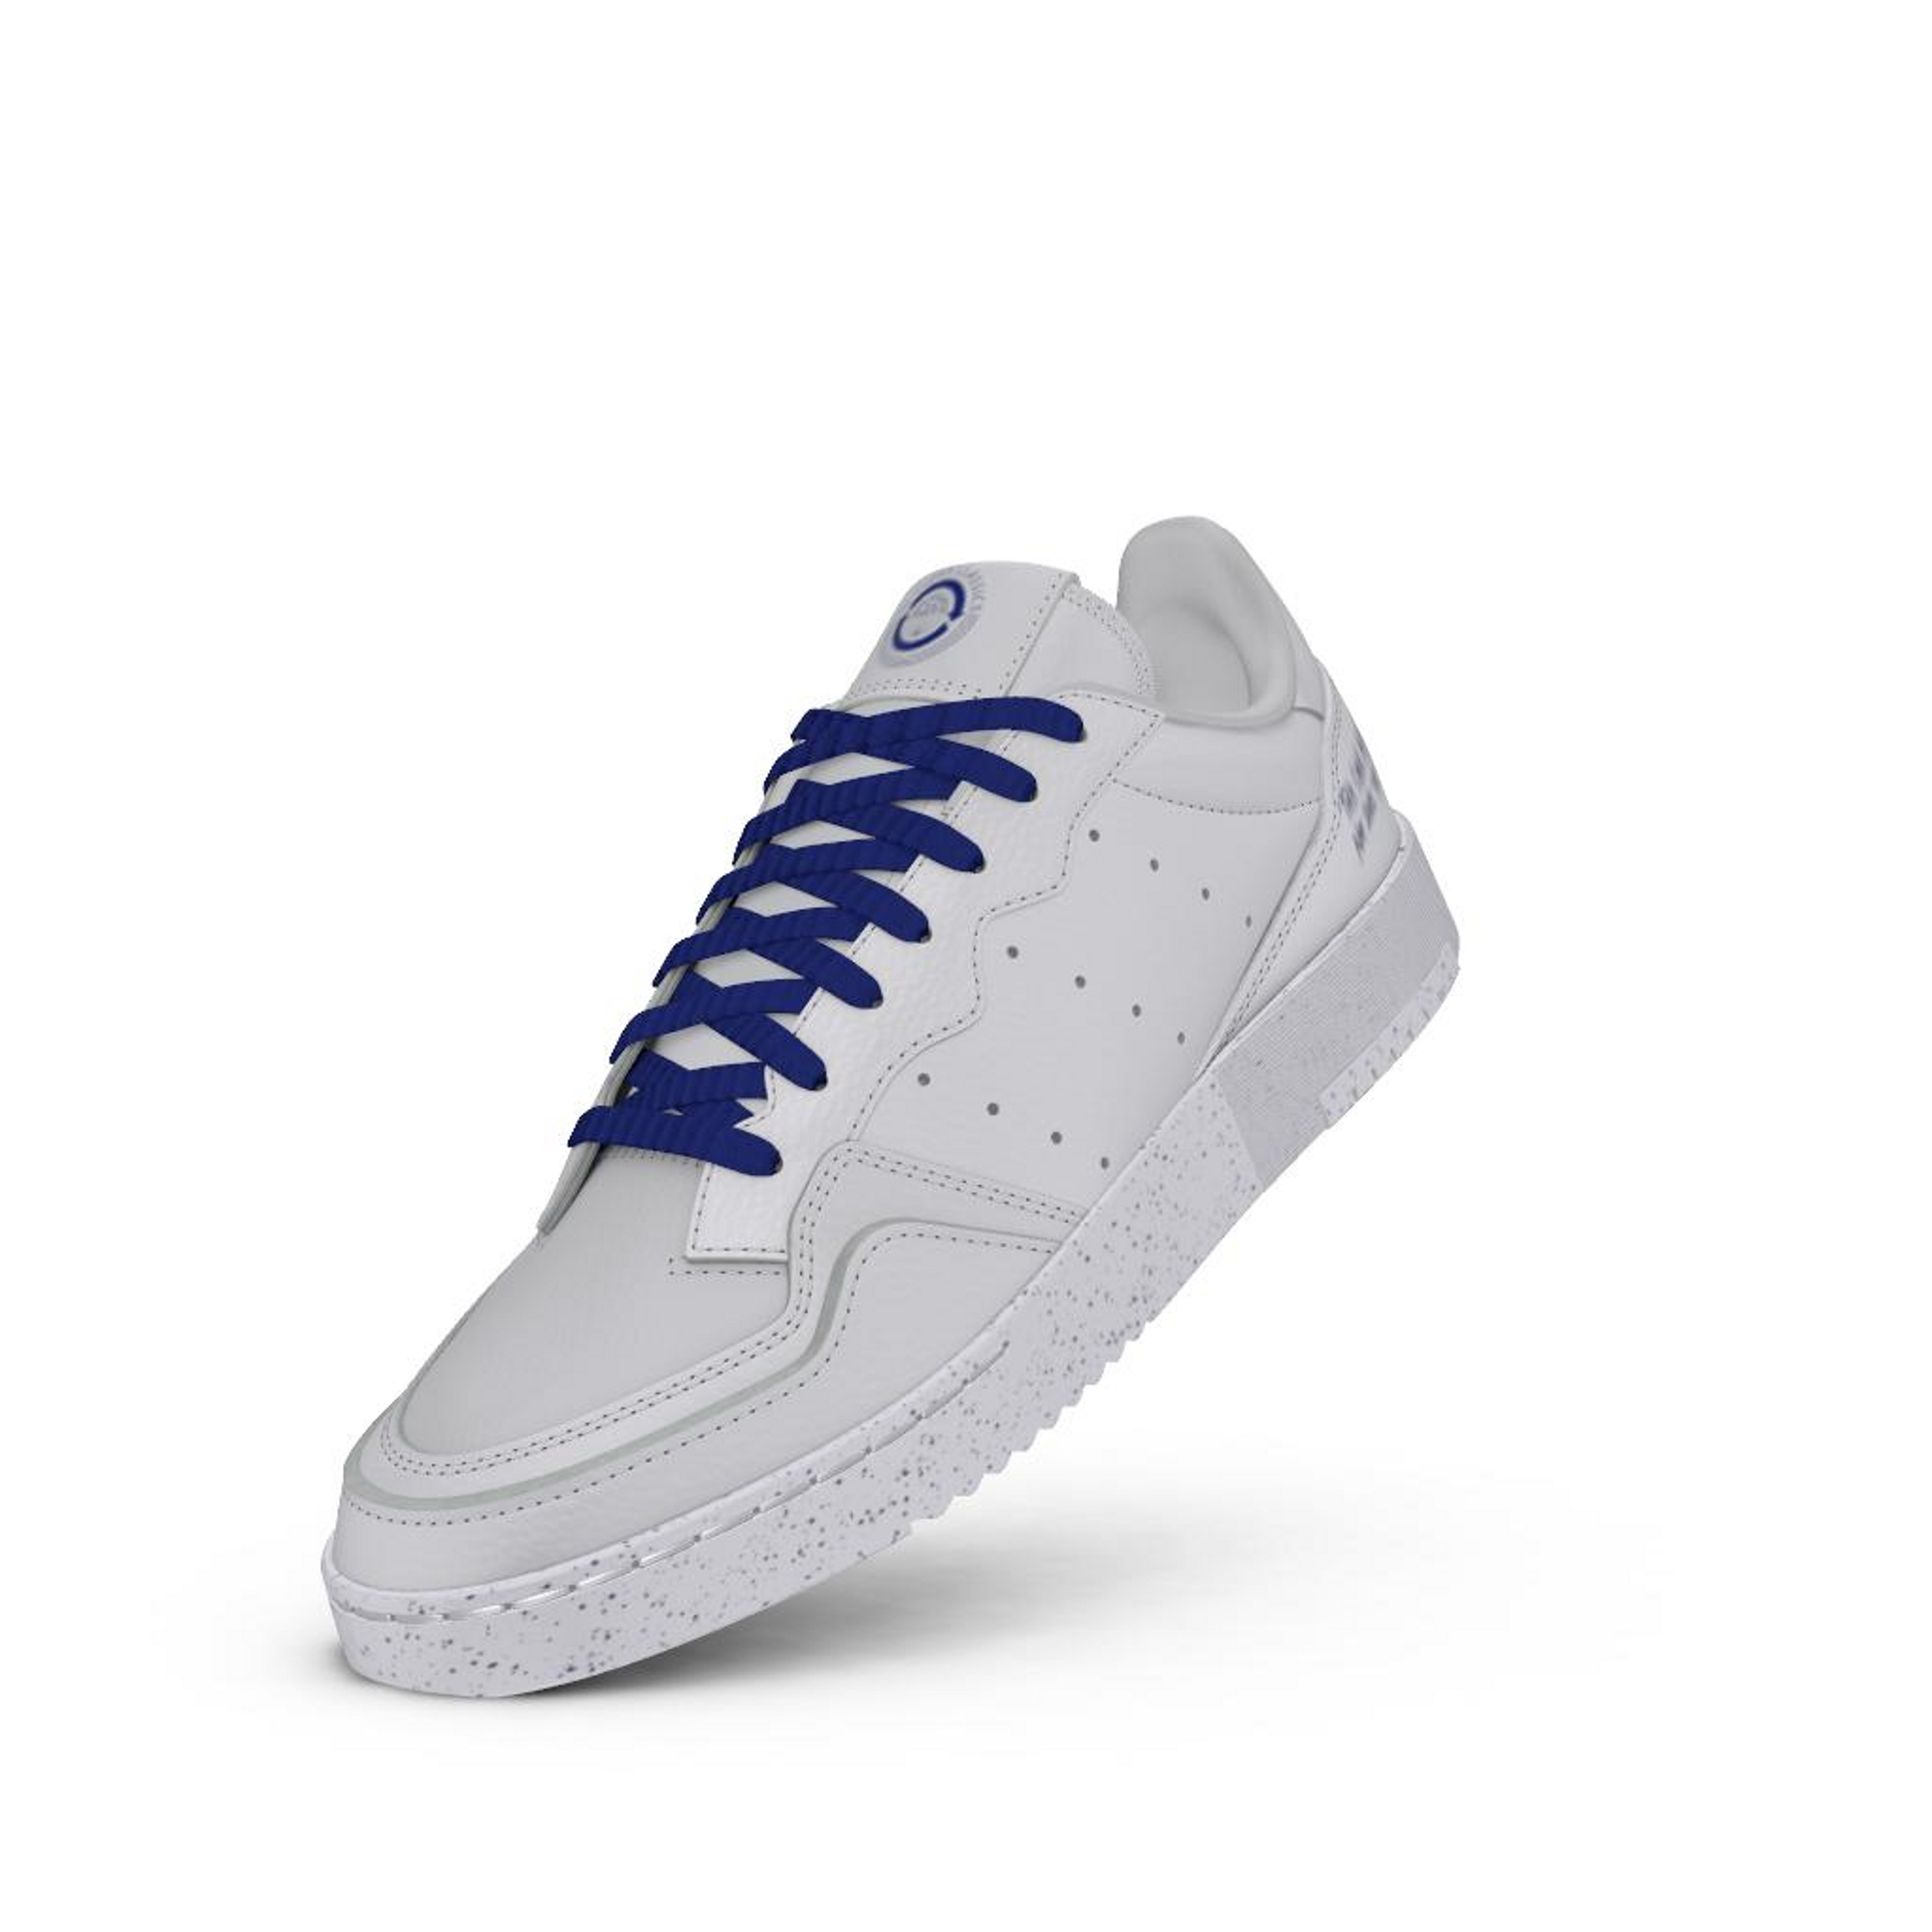 adidas Supercourt Clean Classics Ftw White/ Ftw White/ Core Royal